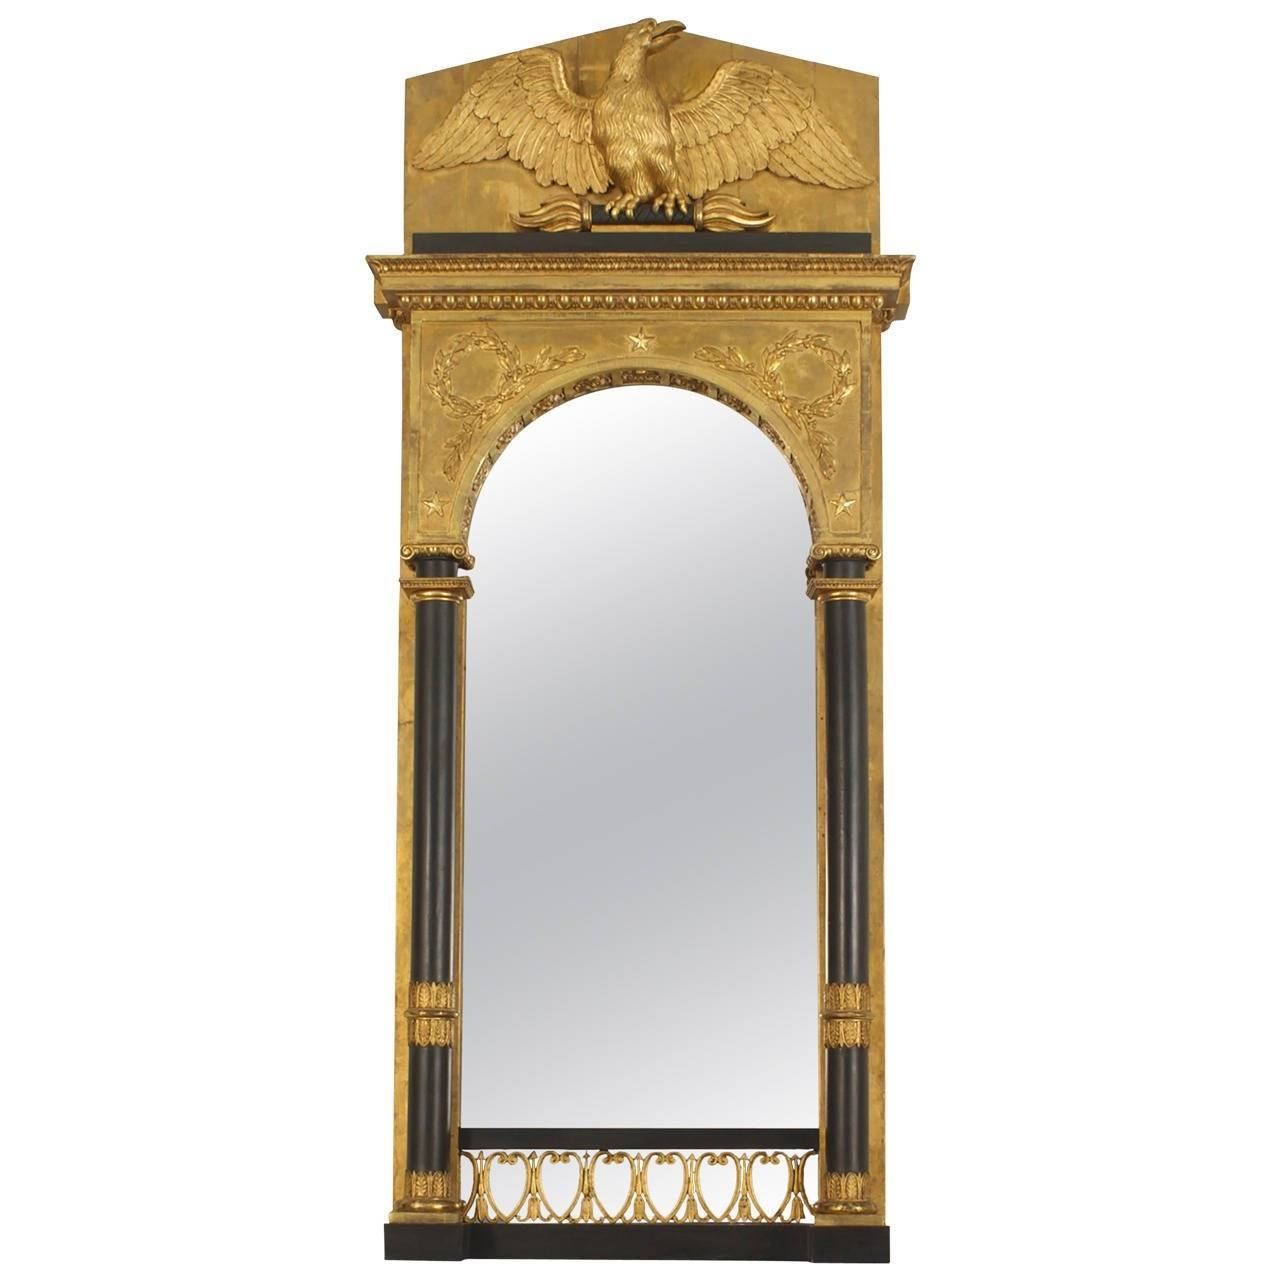 Continental Swedish Empire Architectural Gilt Wall Mirror With in Gilt Framed Mirrors (Image 8 of 25)